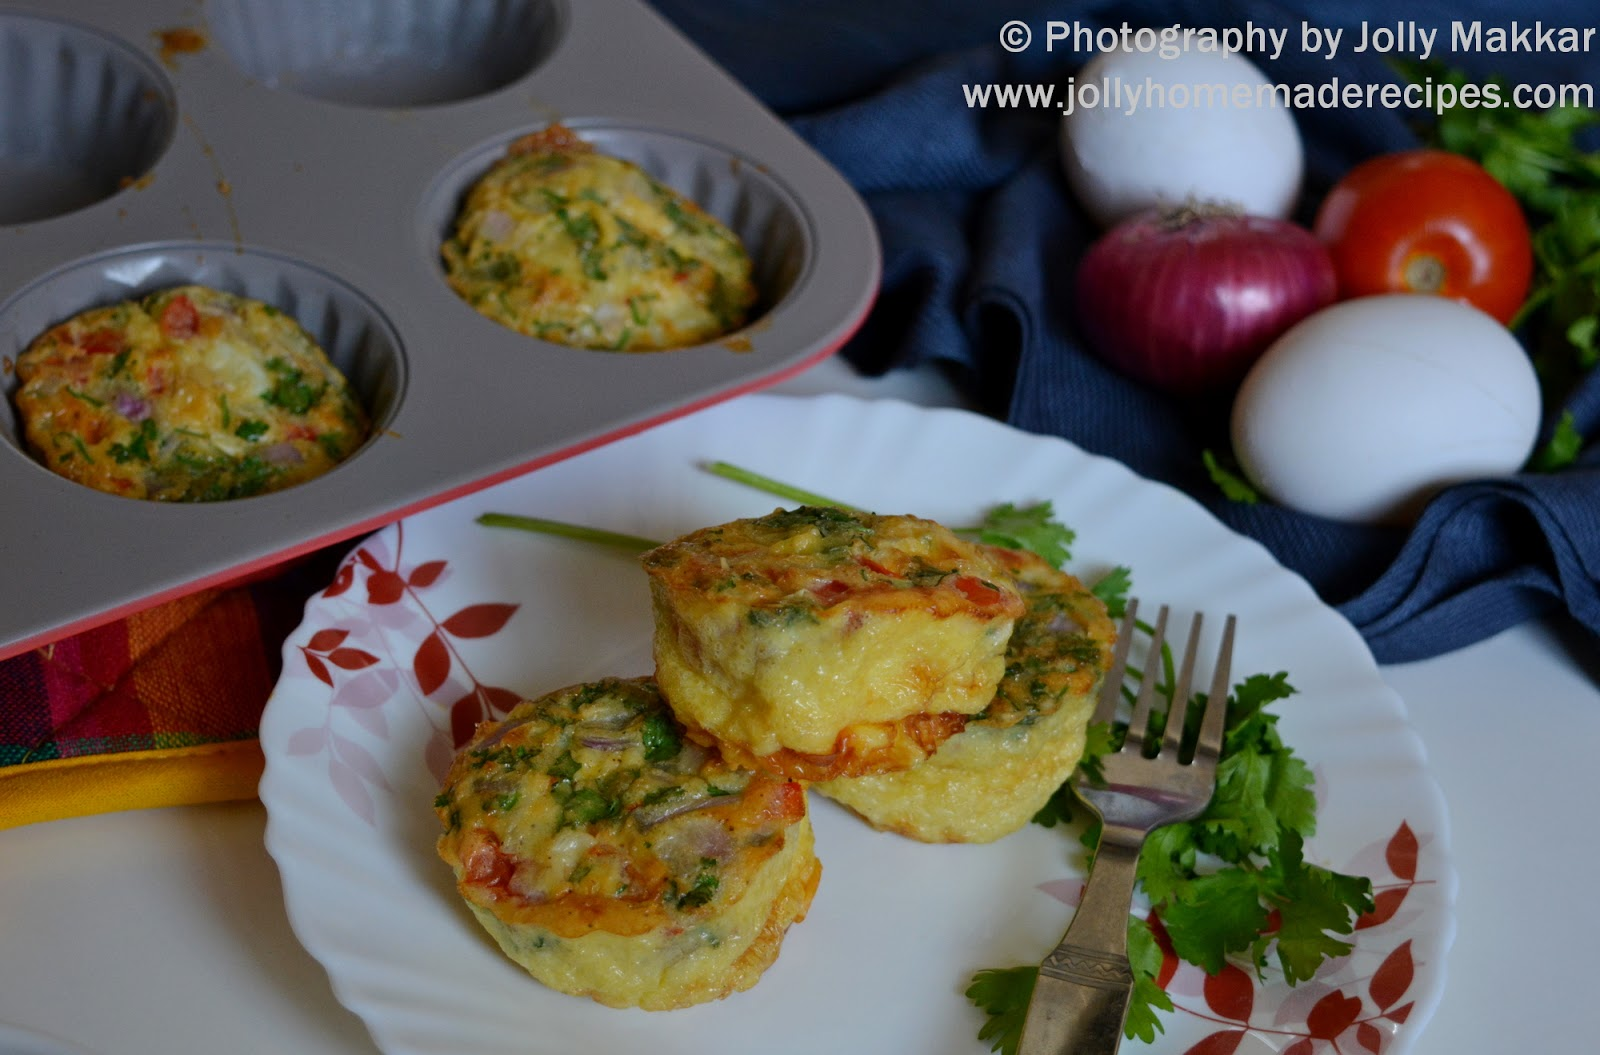 Breakfast Egg Muffins, How to make Easy Egg Muffins | Baked Egg Muffins with Veggies